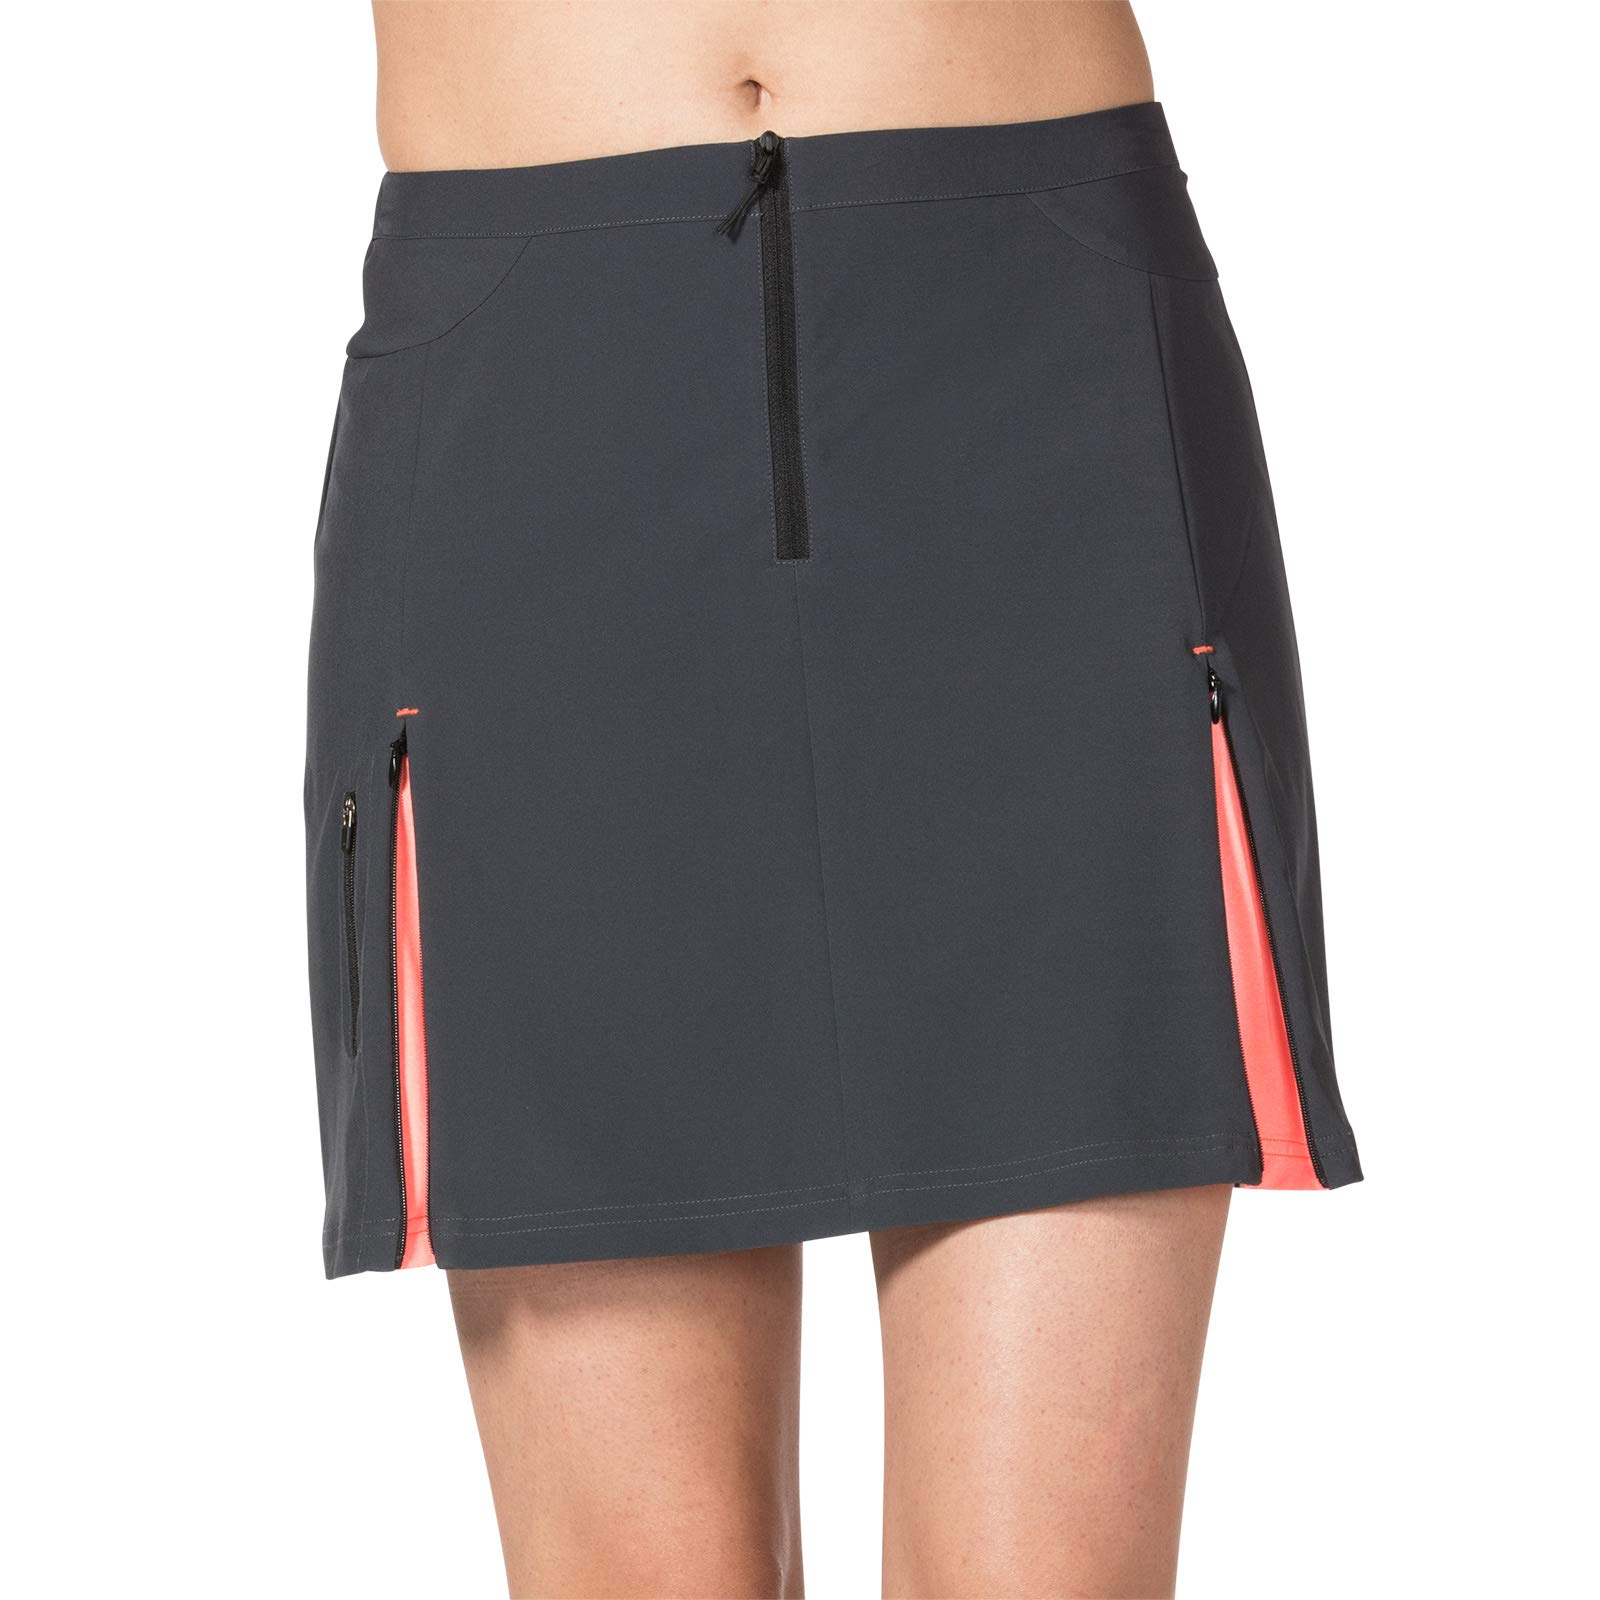 Terry Zipper Skirt Women's Cycling Athletic Quick Dry Bike Touring Skirt - Ebony - Small by Terry